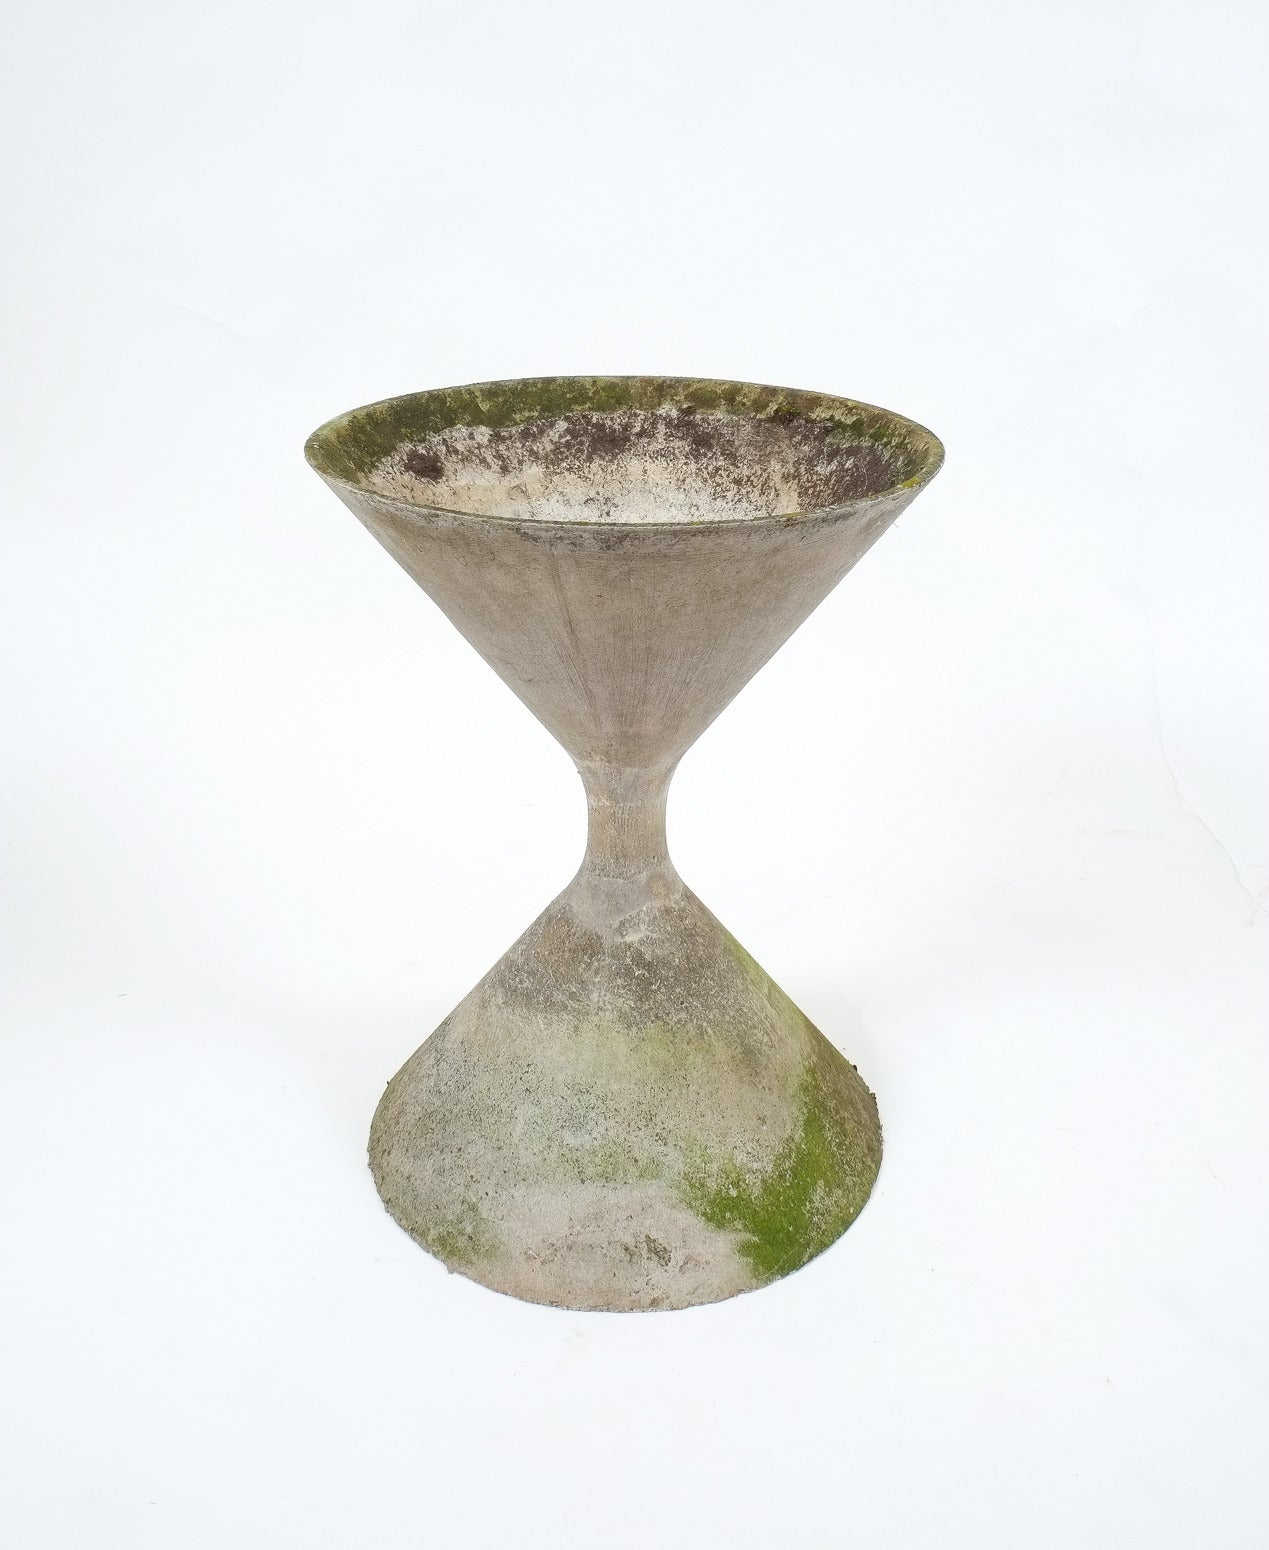 Willy guhl hourglass concrete planter at 1stdibs Concrete planters